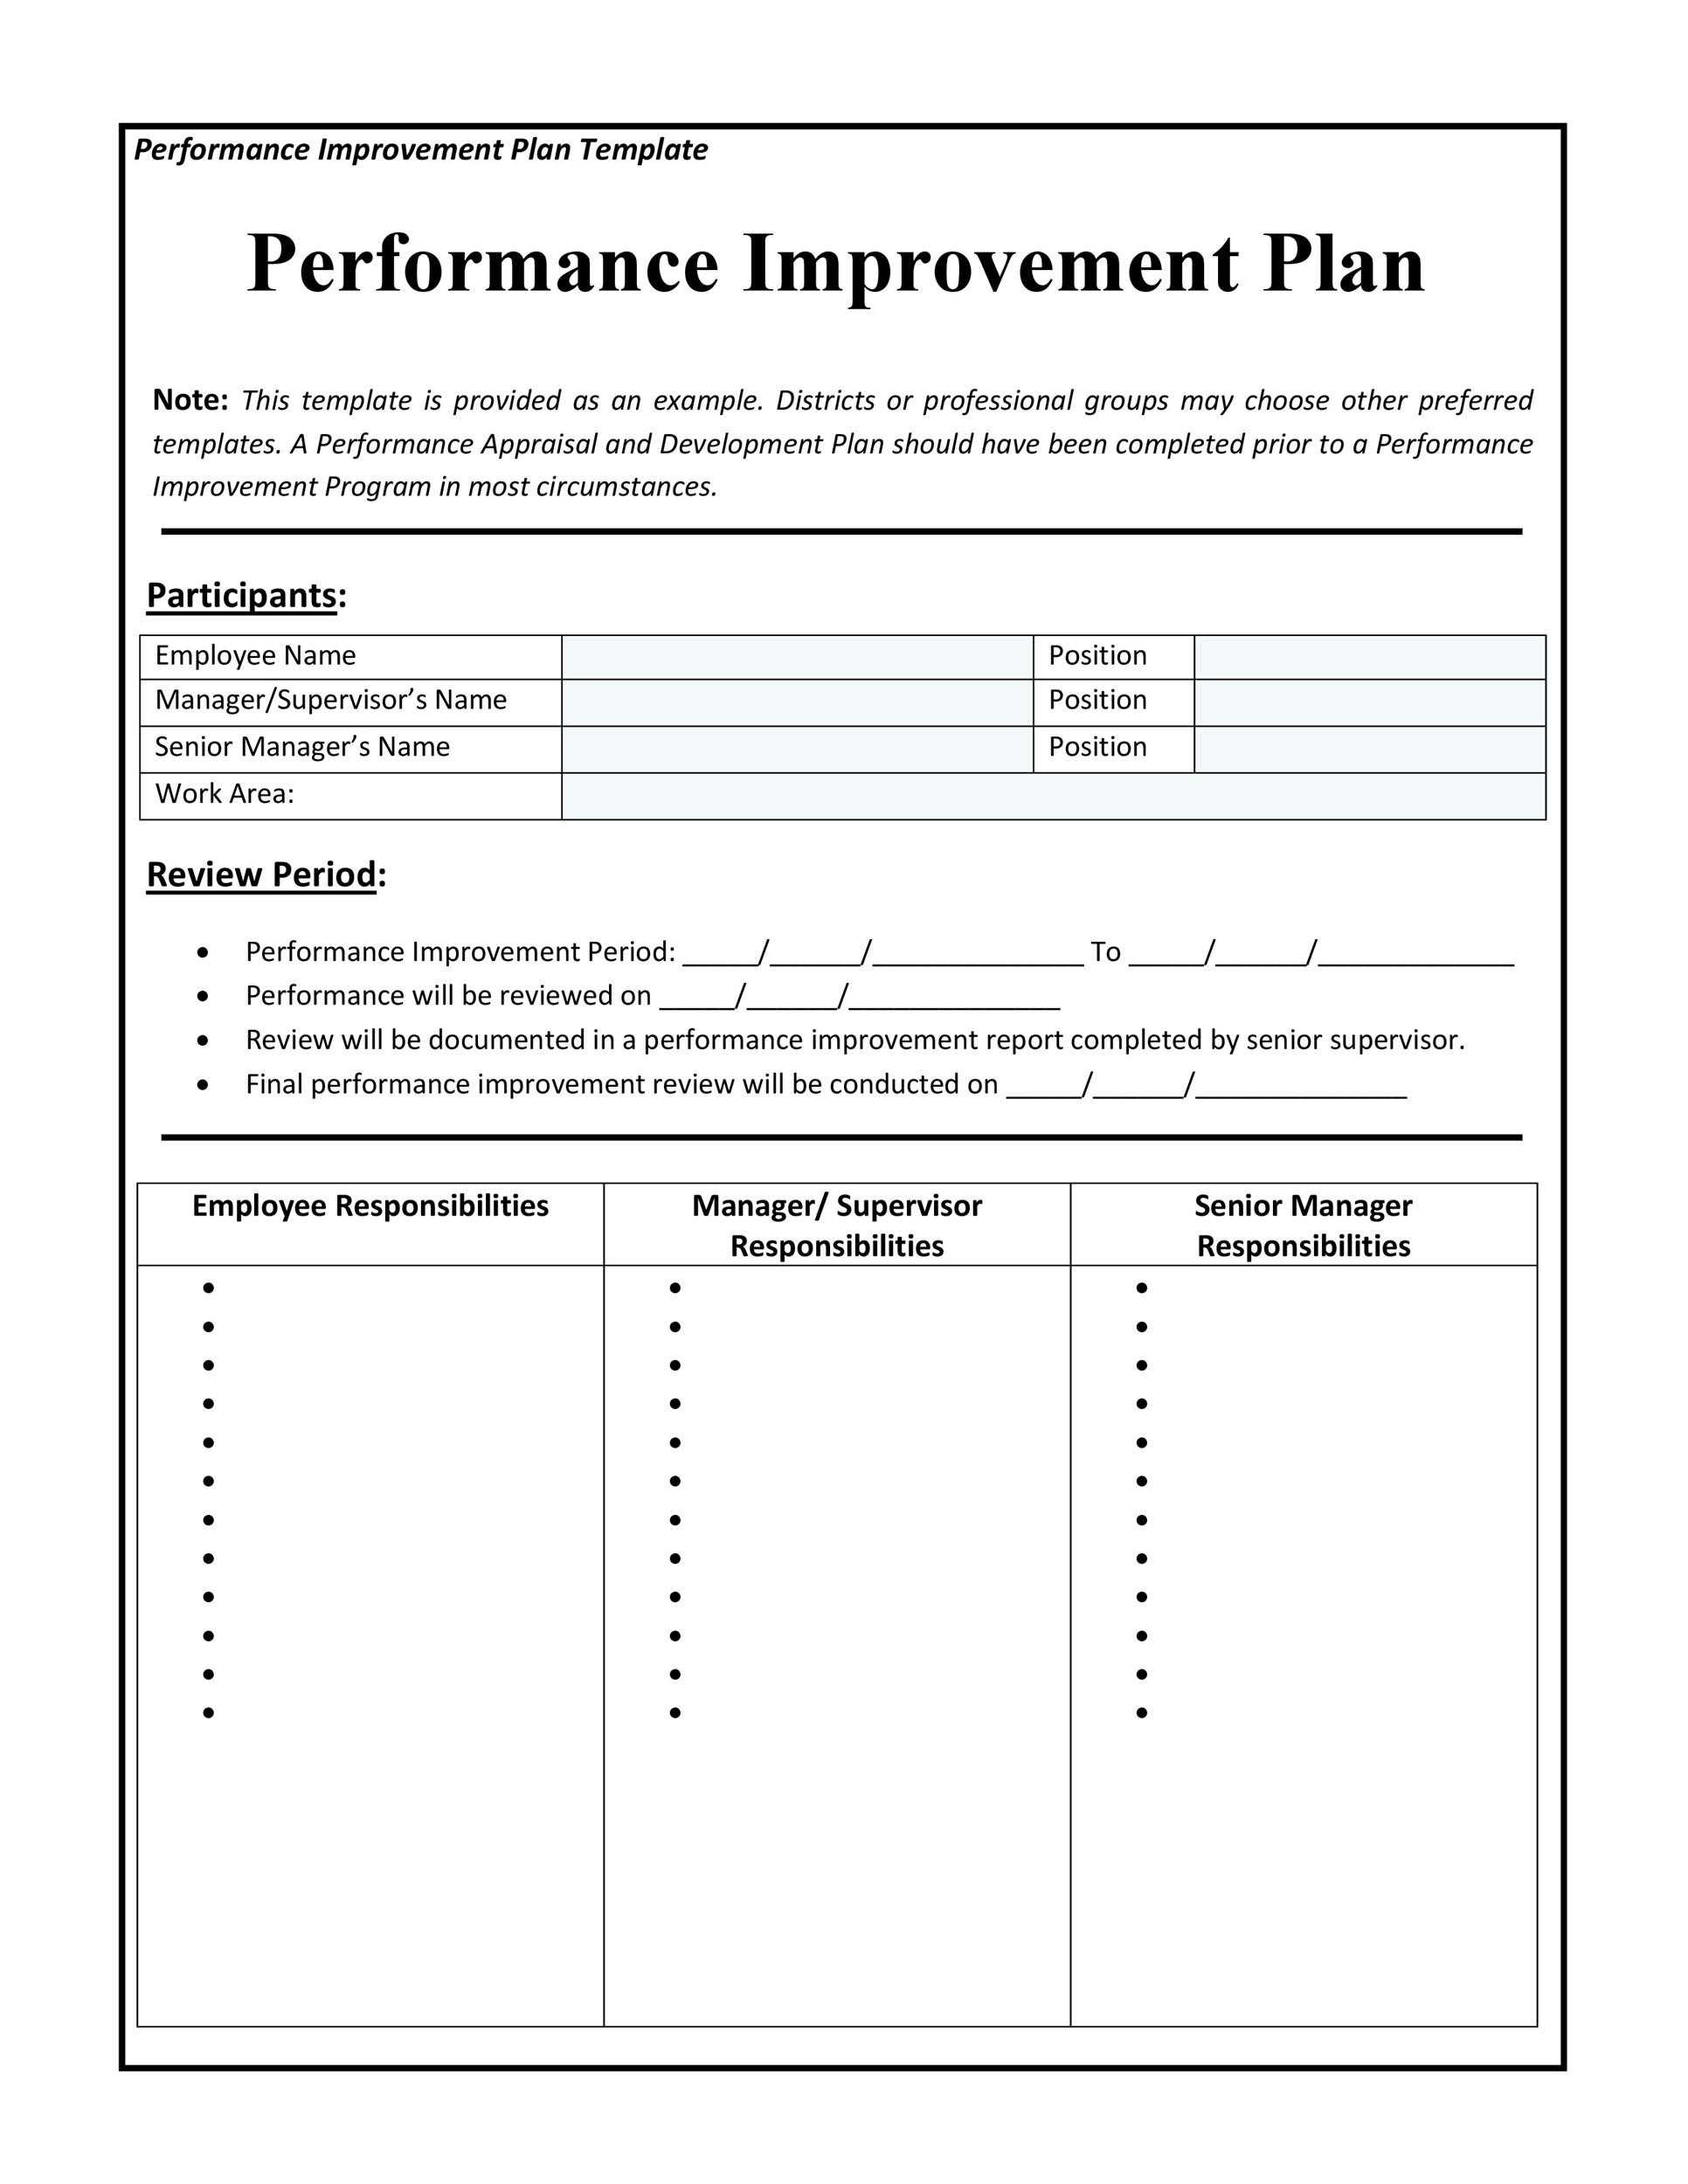 Performance Improvement Plan Examples Idea Example Of Performance Improvement Plan